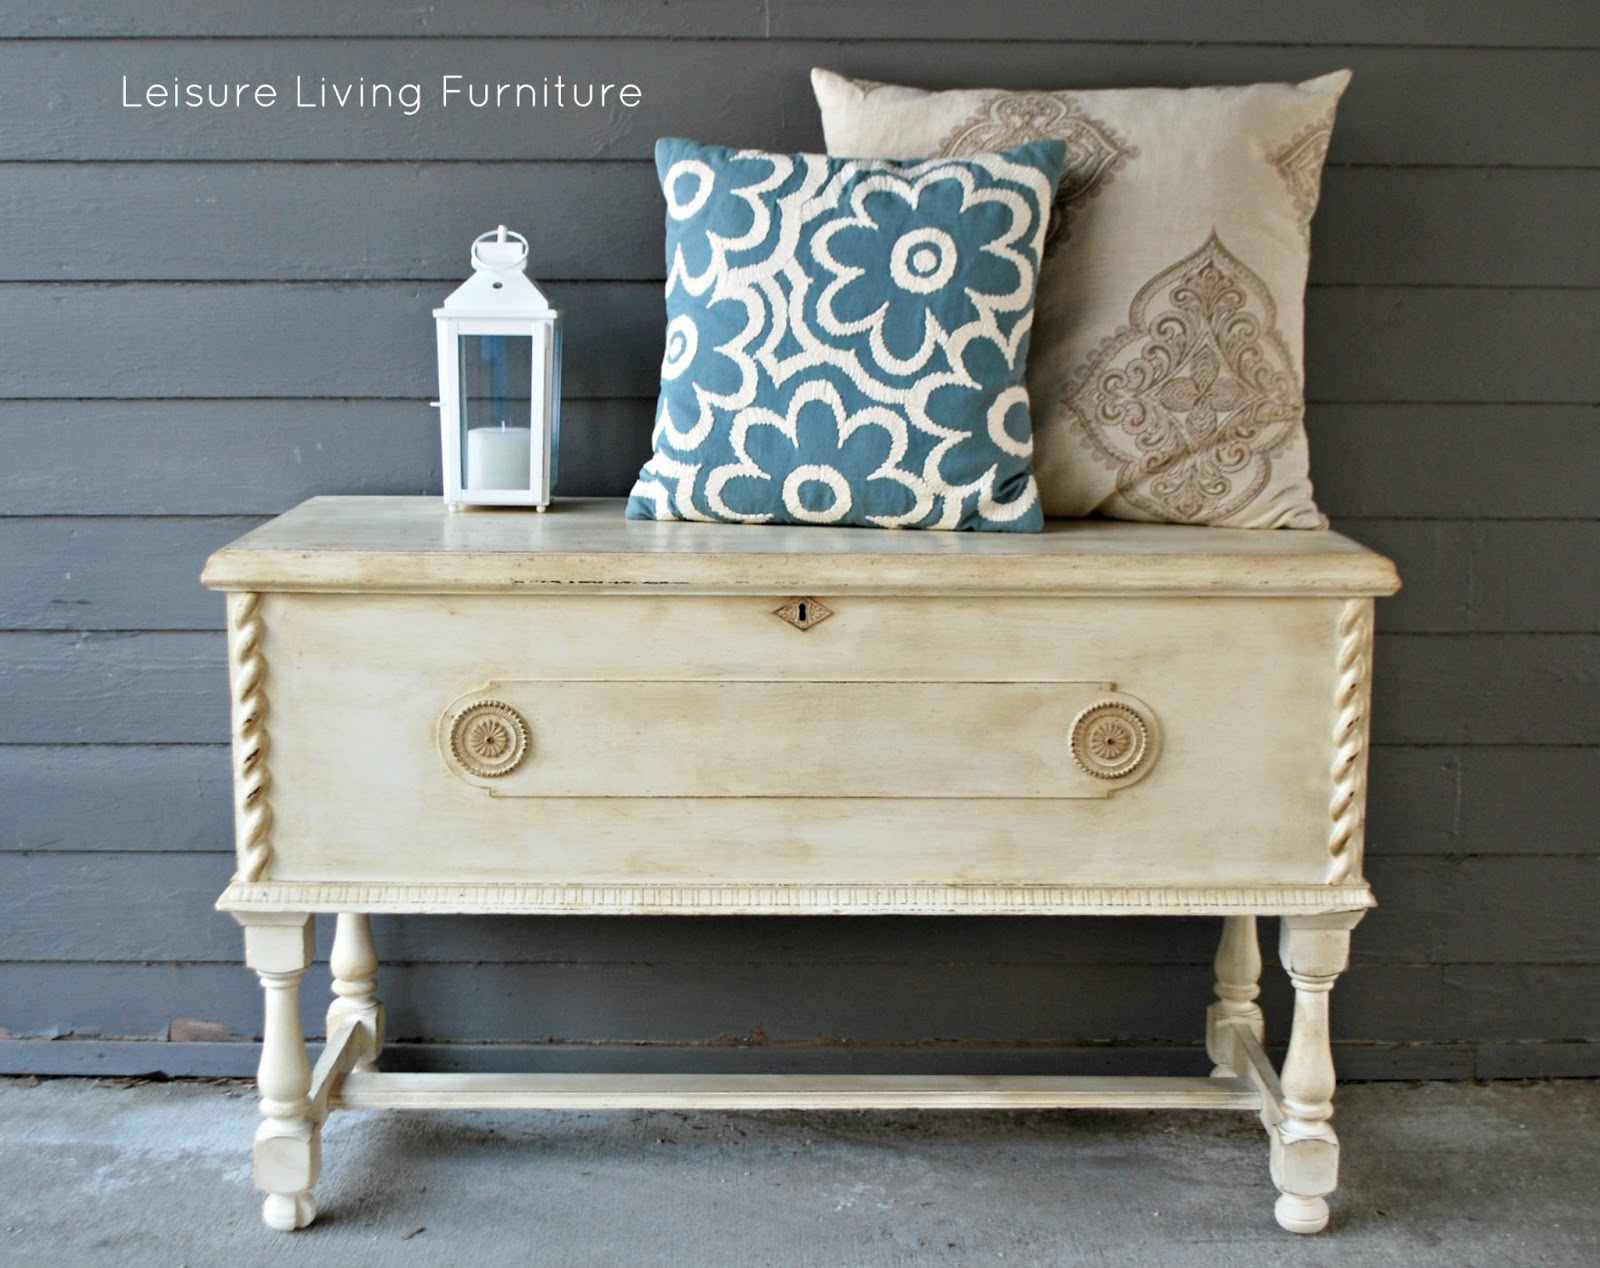 Fabulous Before & After :: Blanket Chest 1600 x 1268 · 236 kB · jpeg